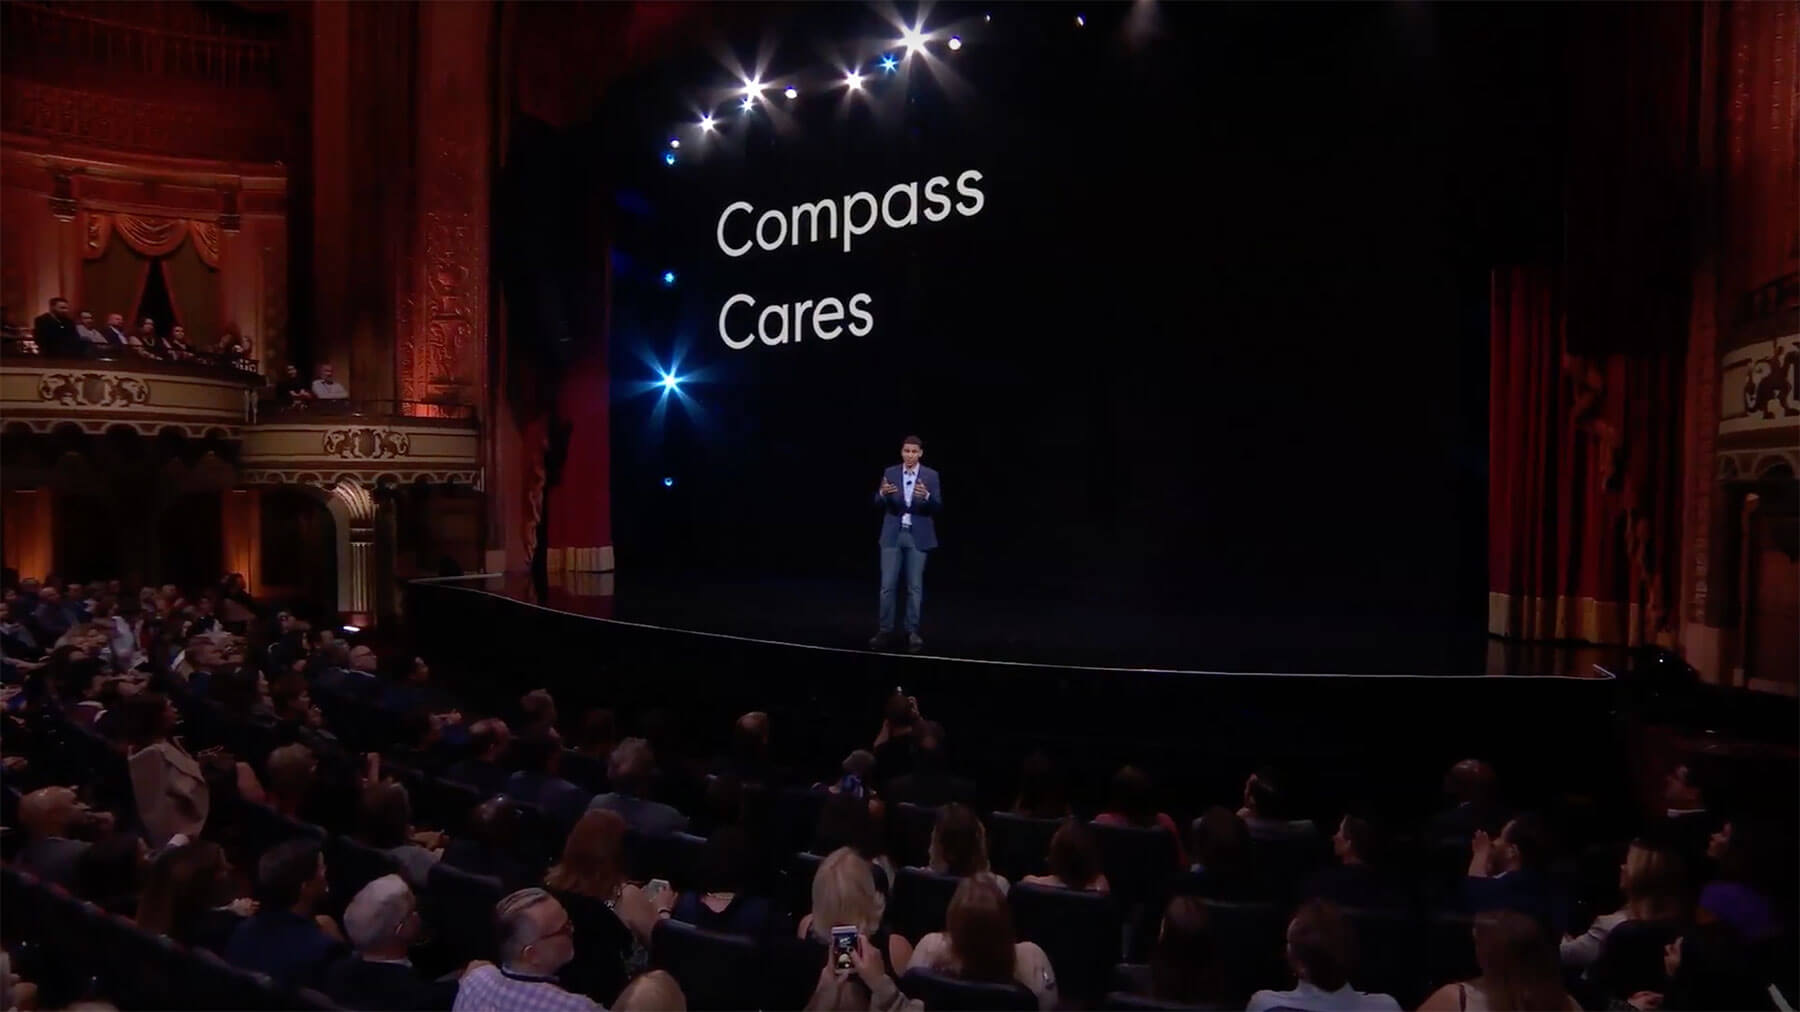 Robert Reffkin announces Compass Cares